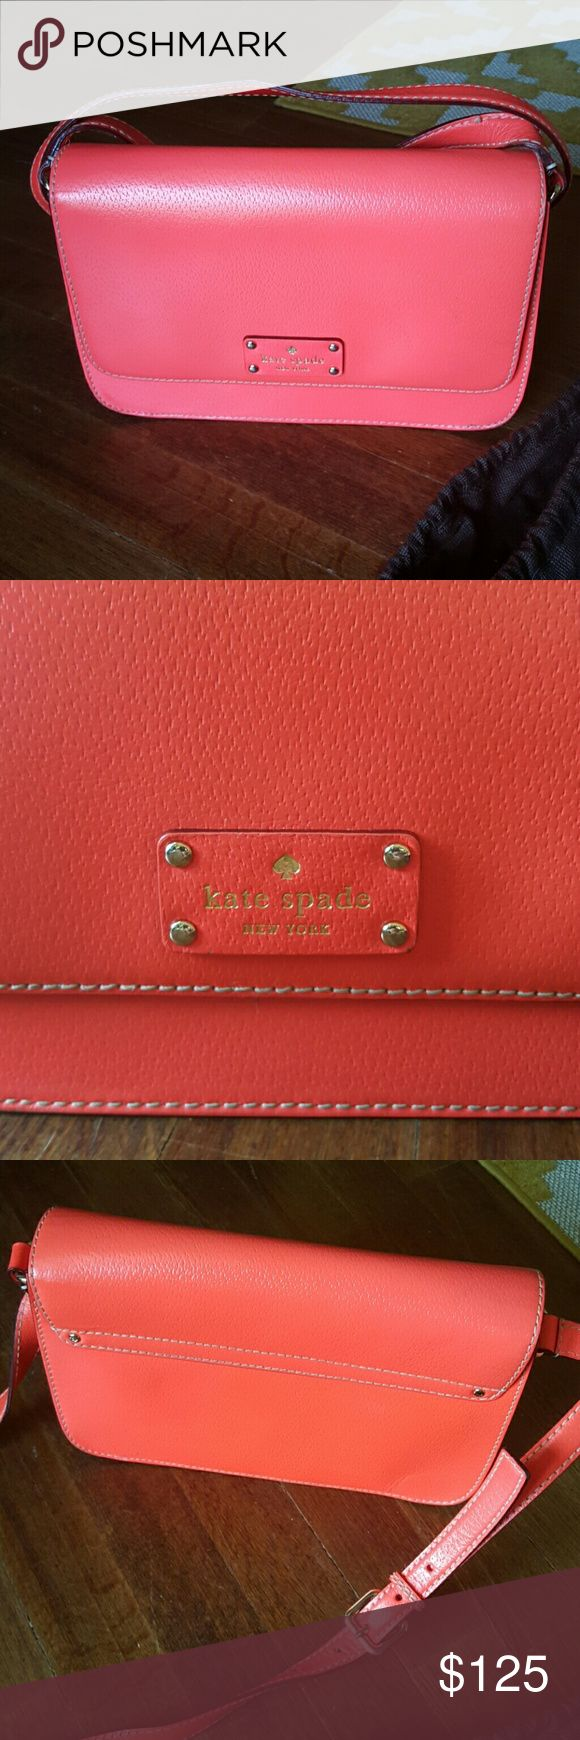 """kate spade crossbow purse Coral Orange Crossbody Bag!!! <3                                      Dimensions: 10.5""""×3""""×7"""". From top of shoulder strap to bottom of purse is approximately 28.25"""". Great condition. Small amount of noticeable everyday use as seen in pictures!!! :) Comes with a kate spade dust bag!!! kate spade Bags"""